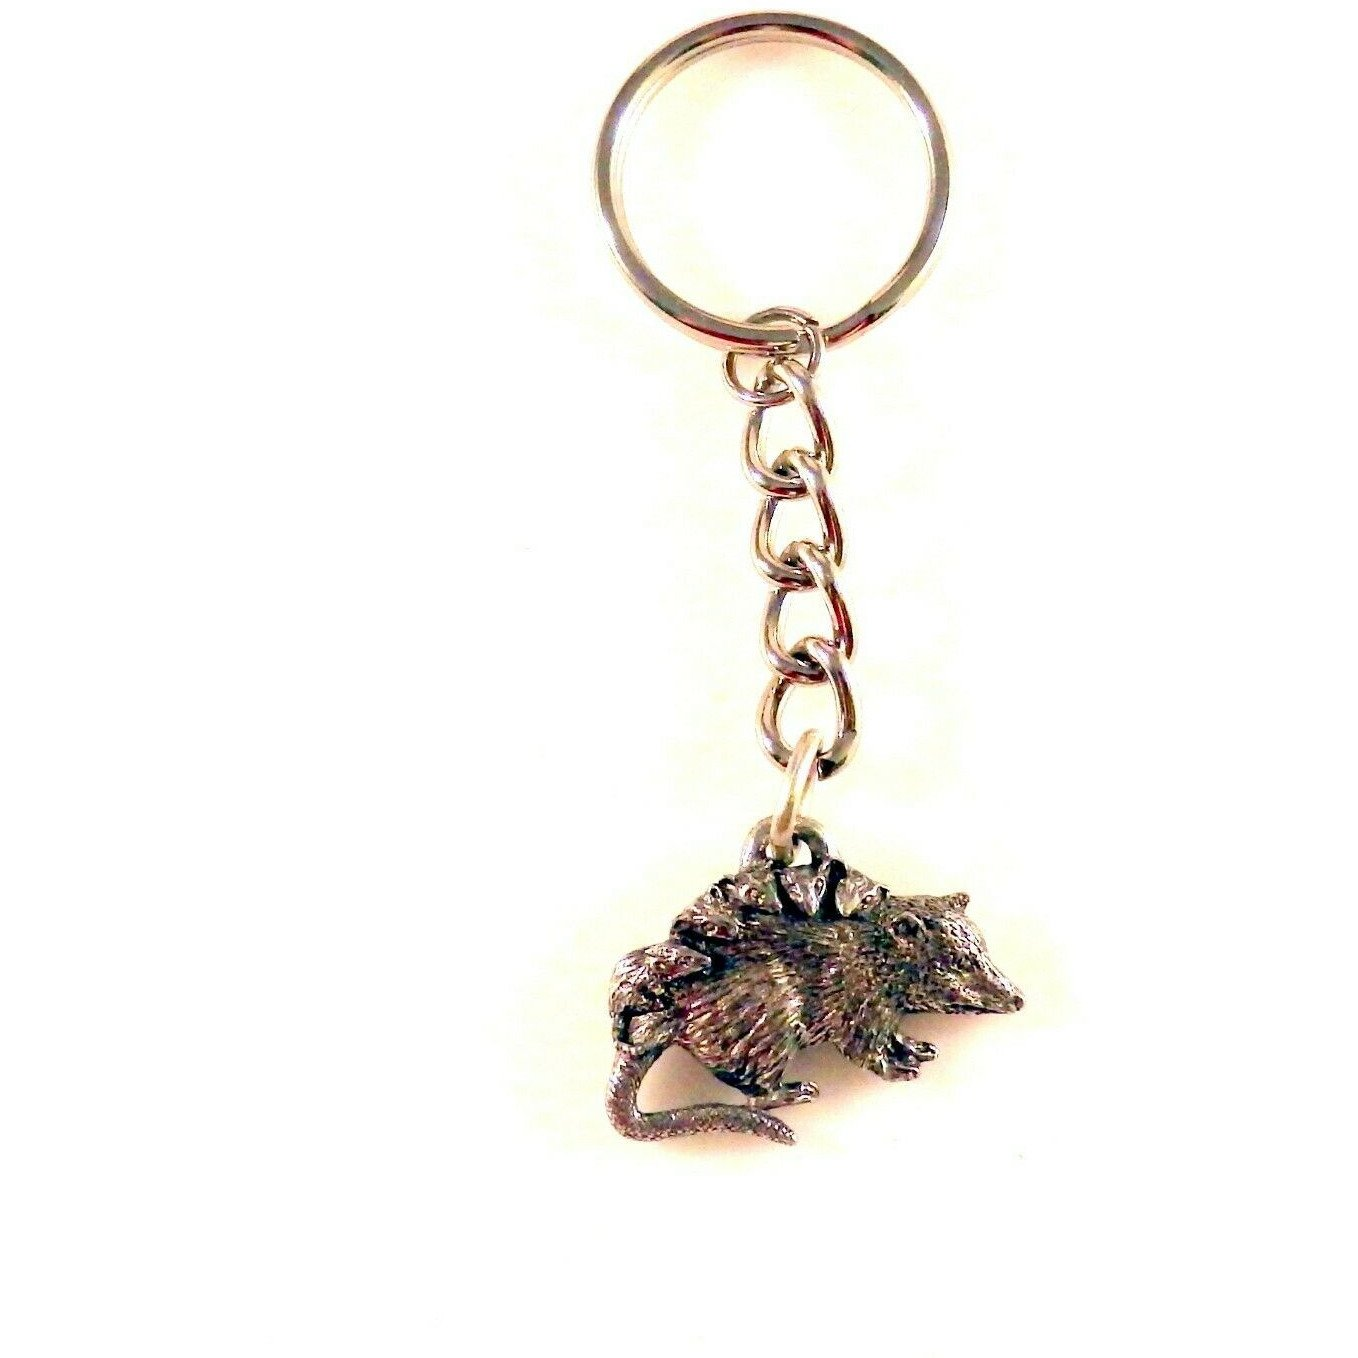 Pewter mama possum key chain (464K)